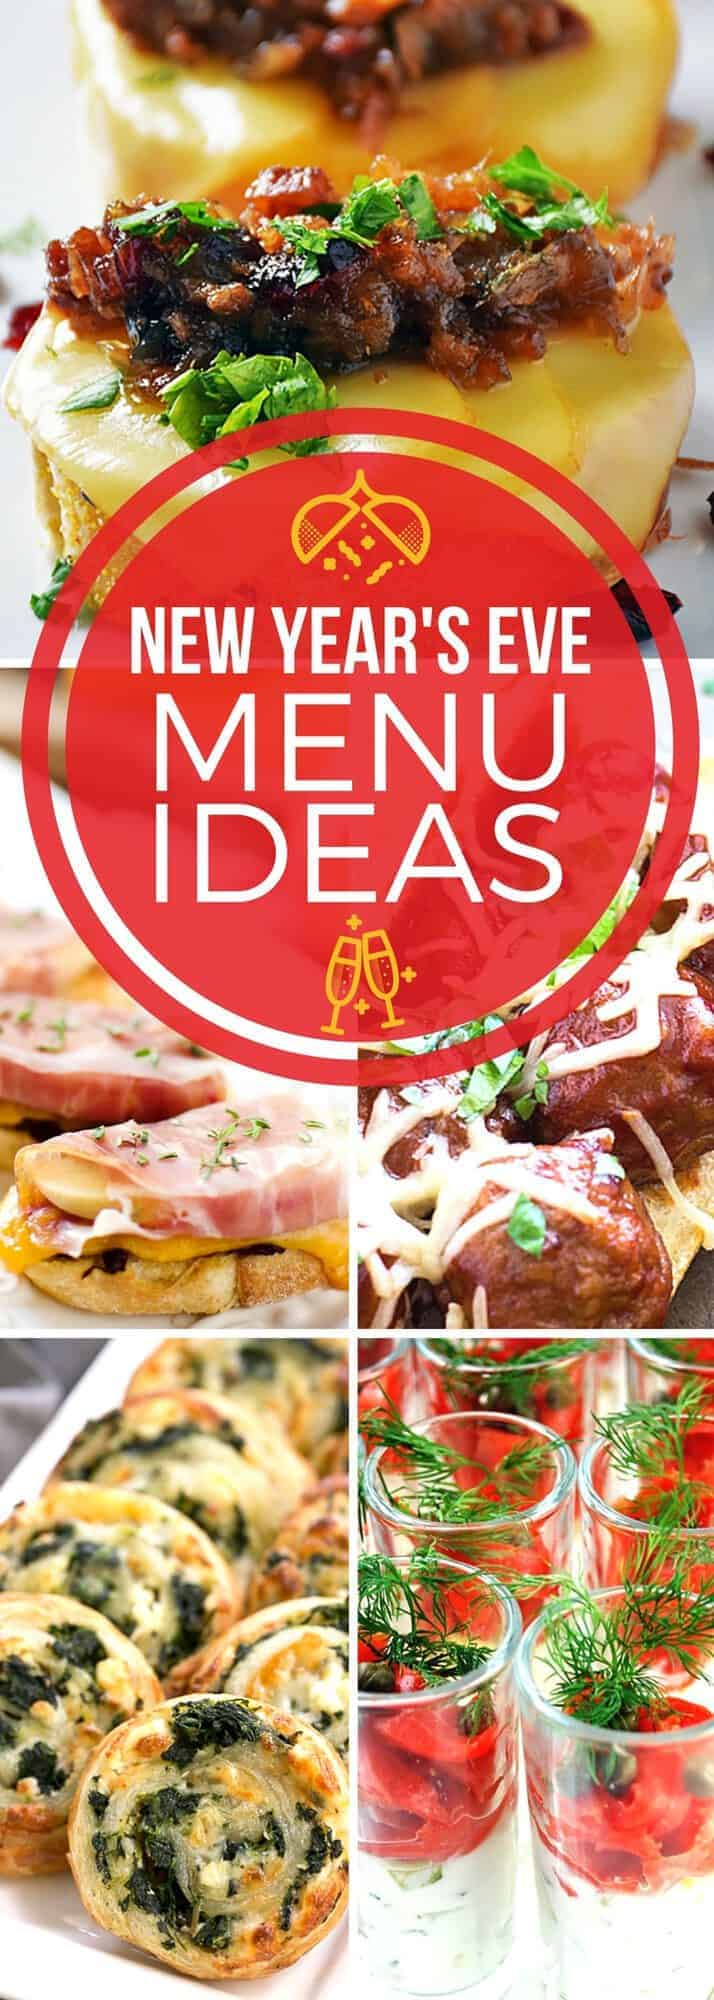 The New Year is upon us! Our New Year's Eve menu ideas have got you covered for all of the party recipes you'll need. Whether you're serving a handful of people or a big party, these no-fuss, tasty appetizer recipes make the perfect crowd pleasers!  #SundaySupper #HolidayRecipes #RecipeCollection #AppetizerRecipes #PartyRecipes